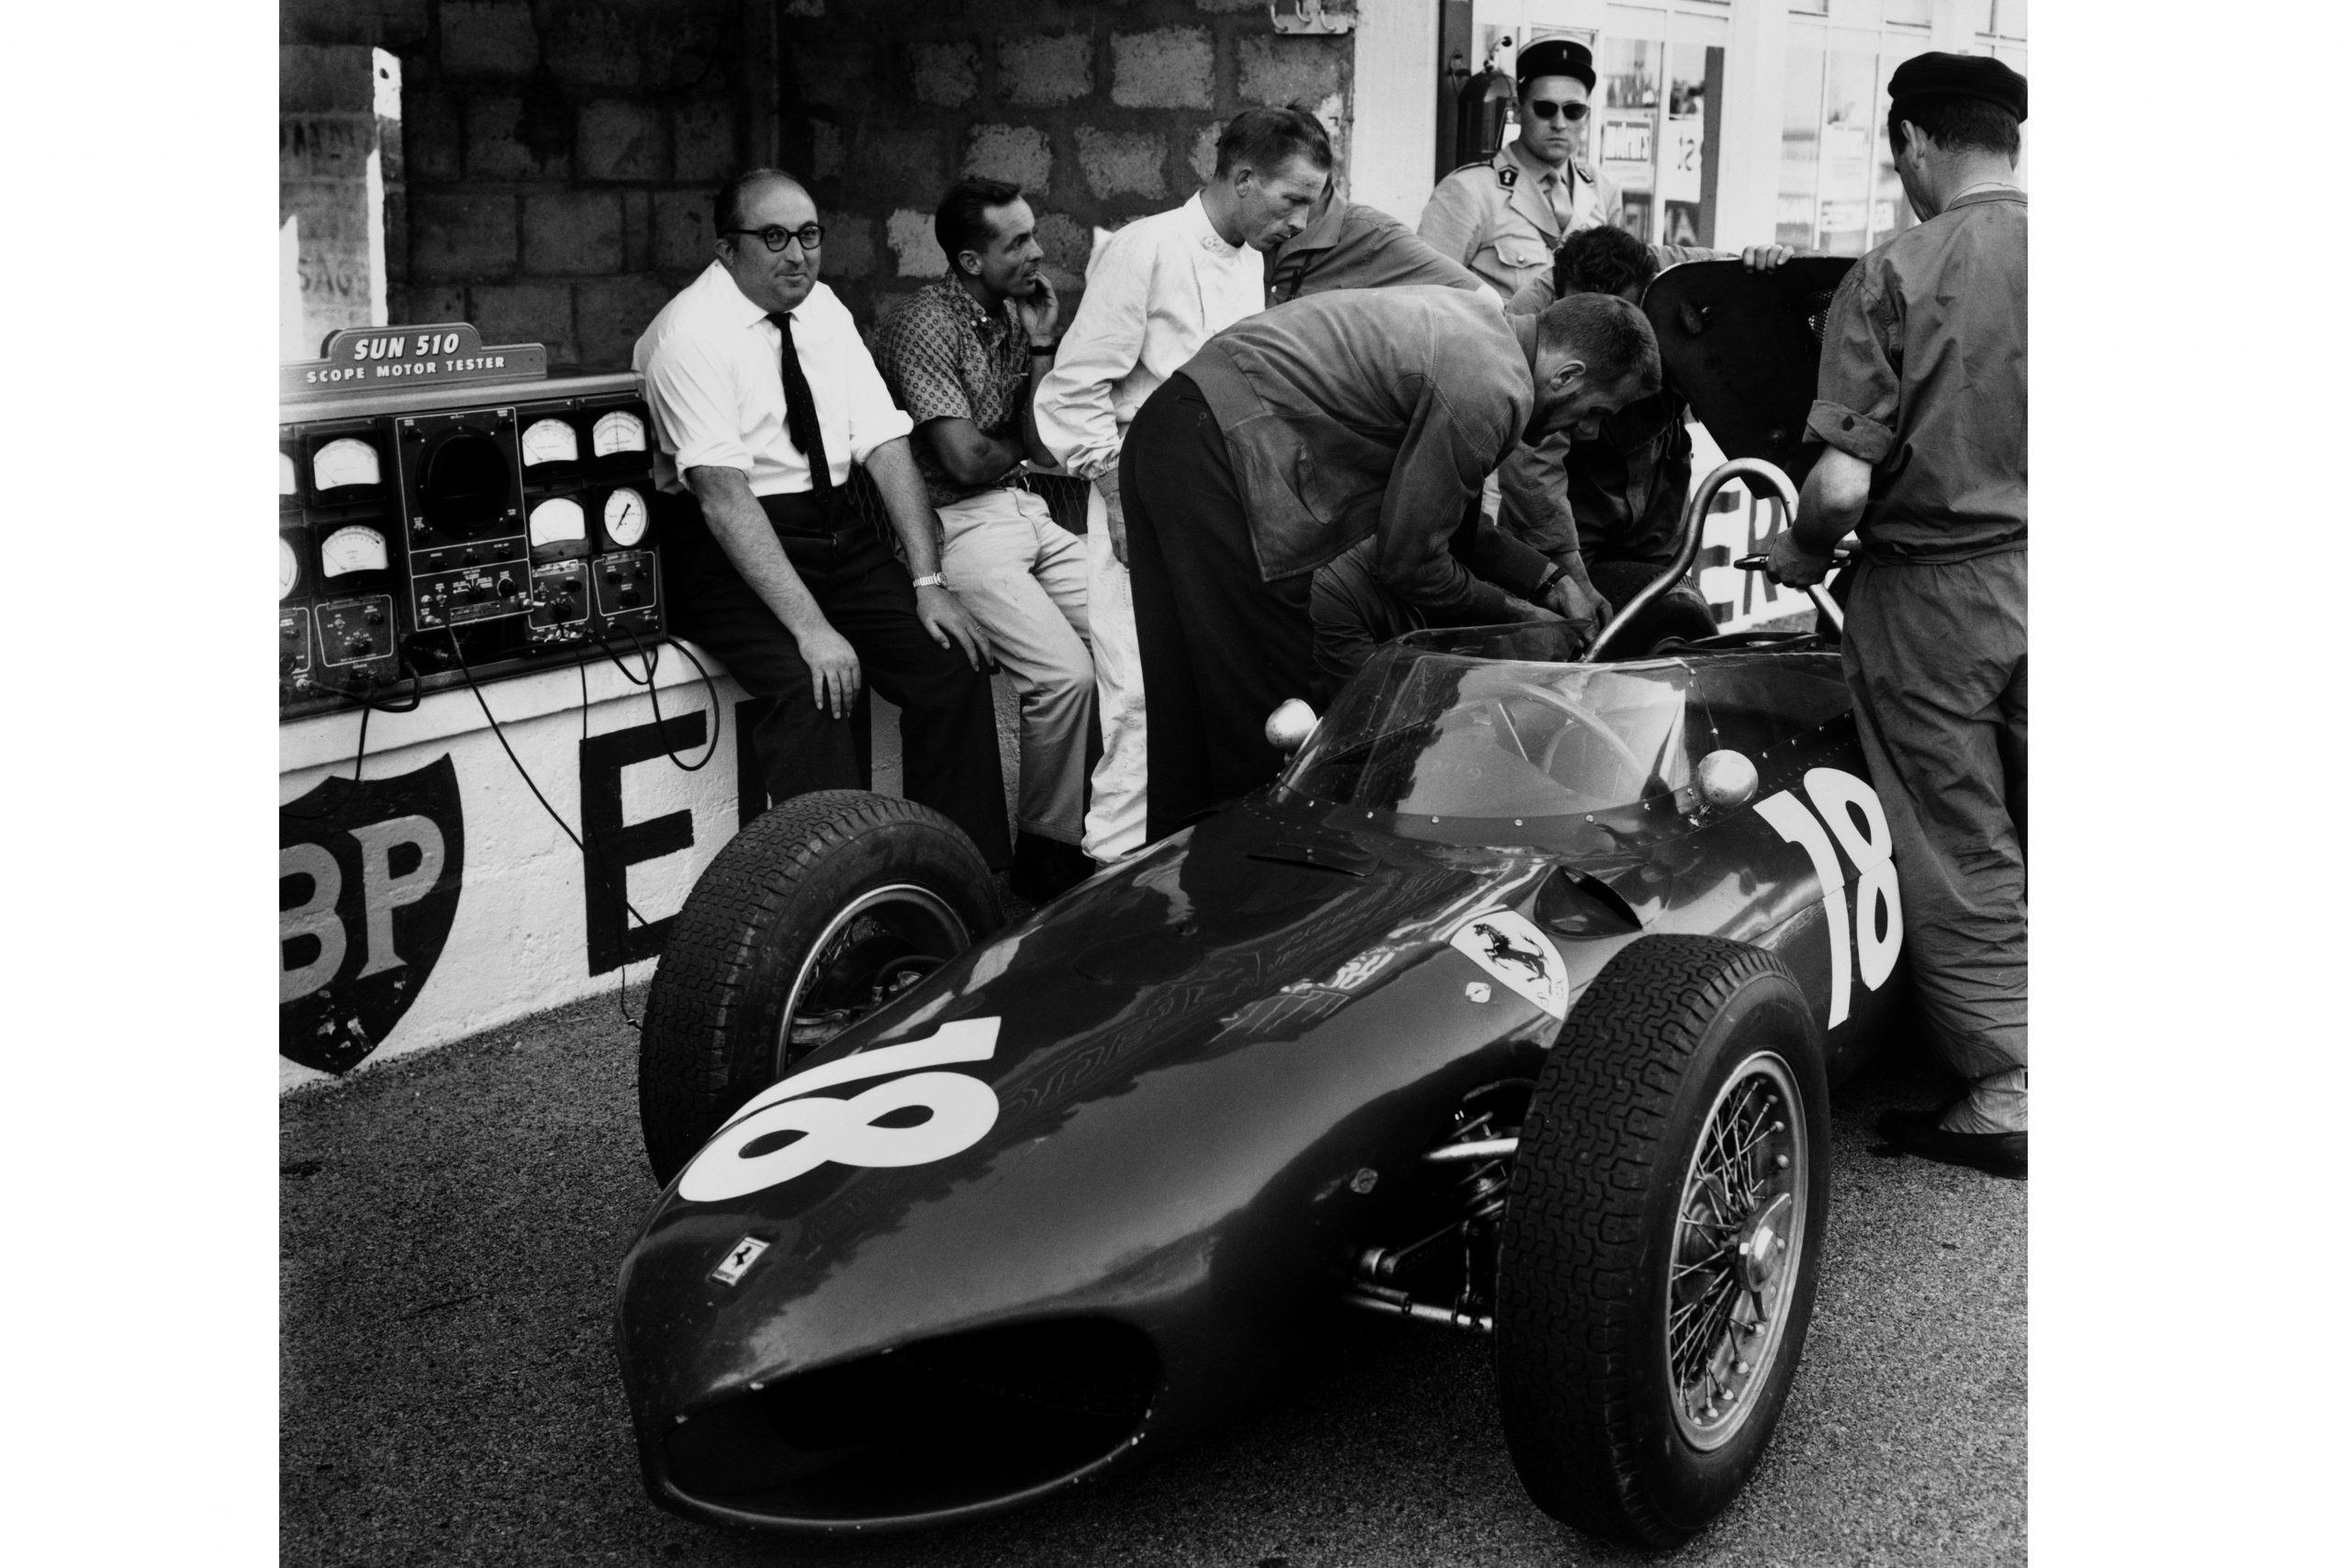 Carlo Chiti, Ferrari engine designer sitting on the pit wall with Phil Hill and Richie Ginther.